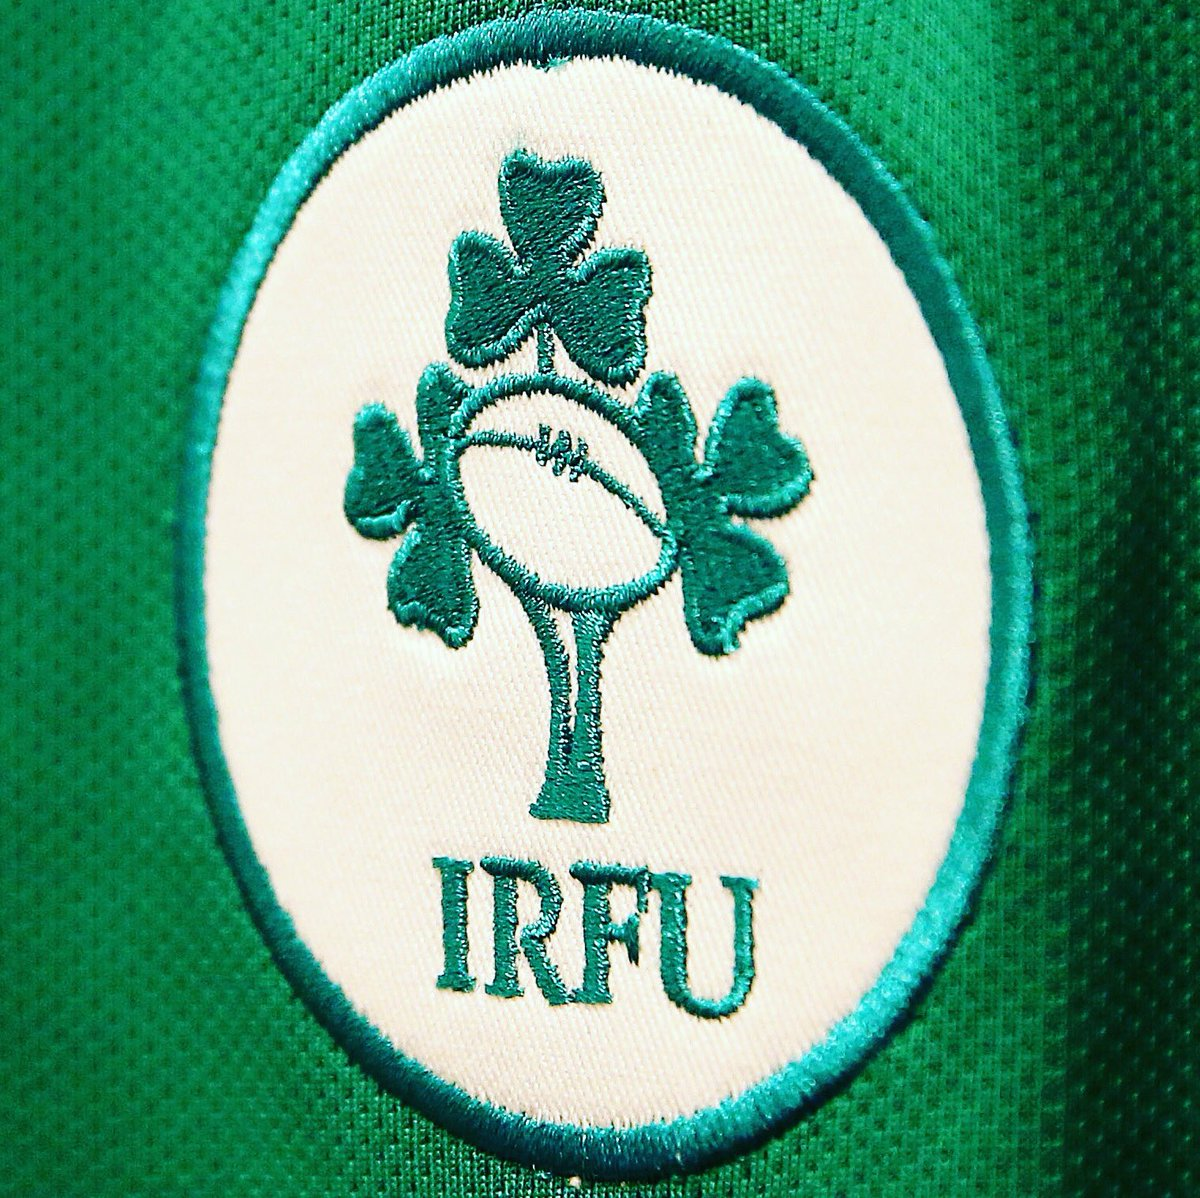 Irish Rugby On Twitter Need Some Shamrock Weve Got You Covered